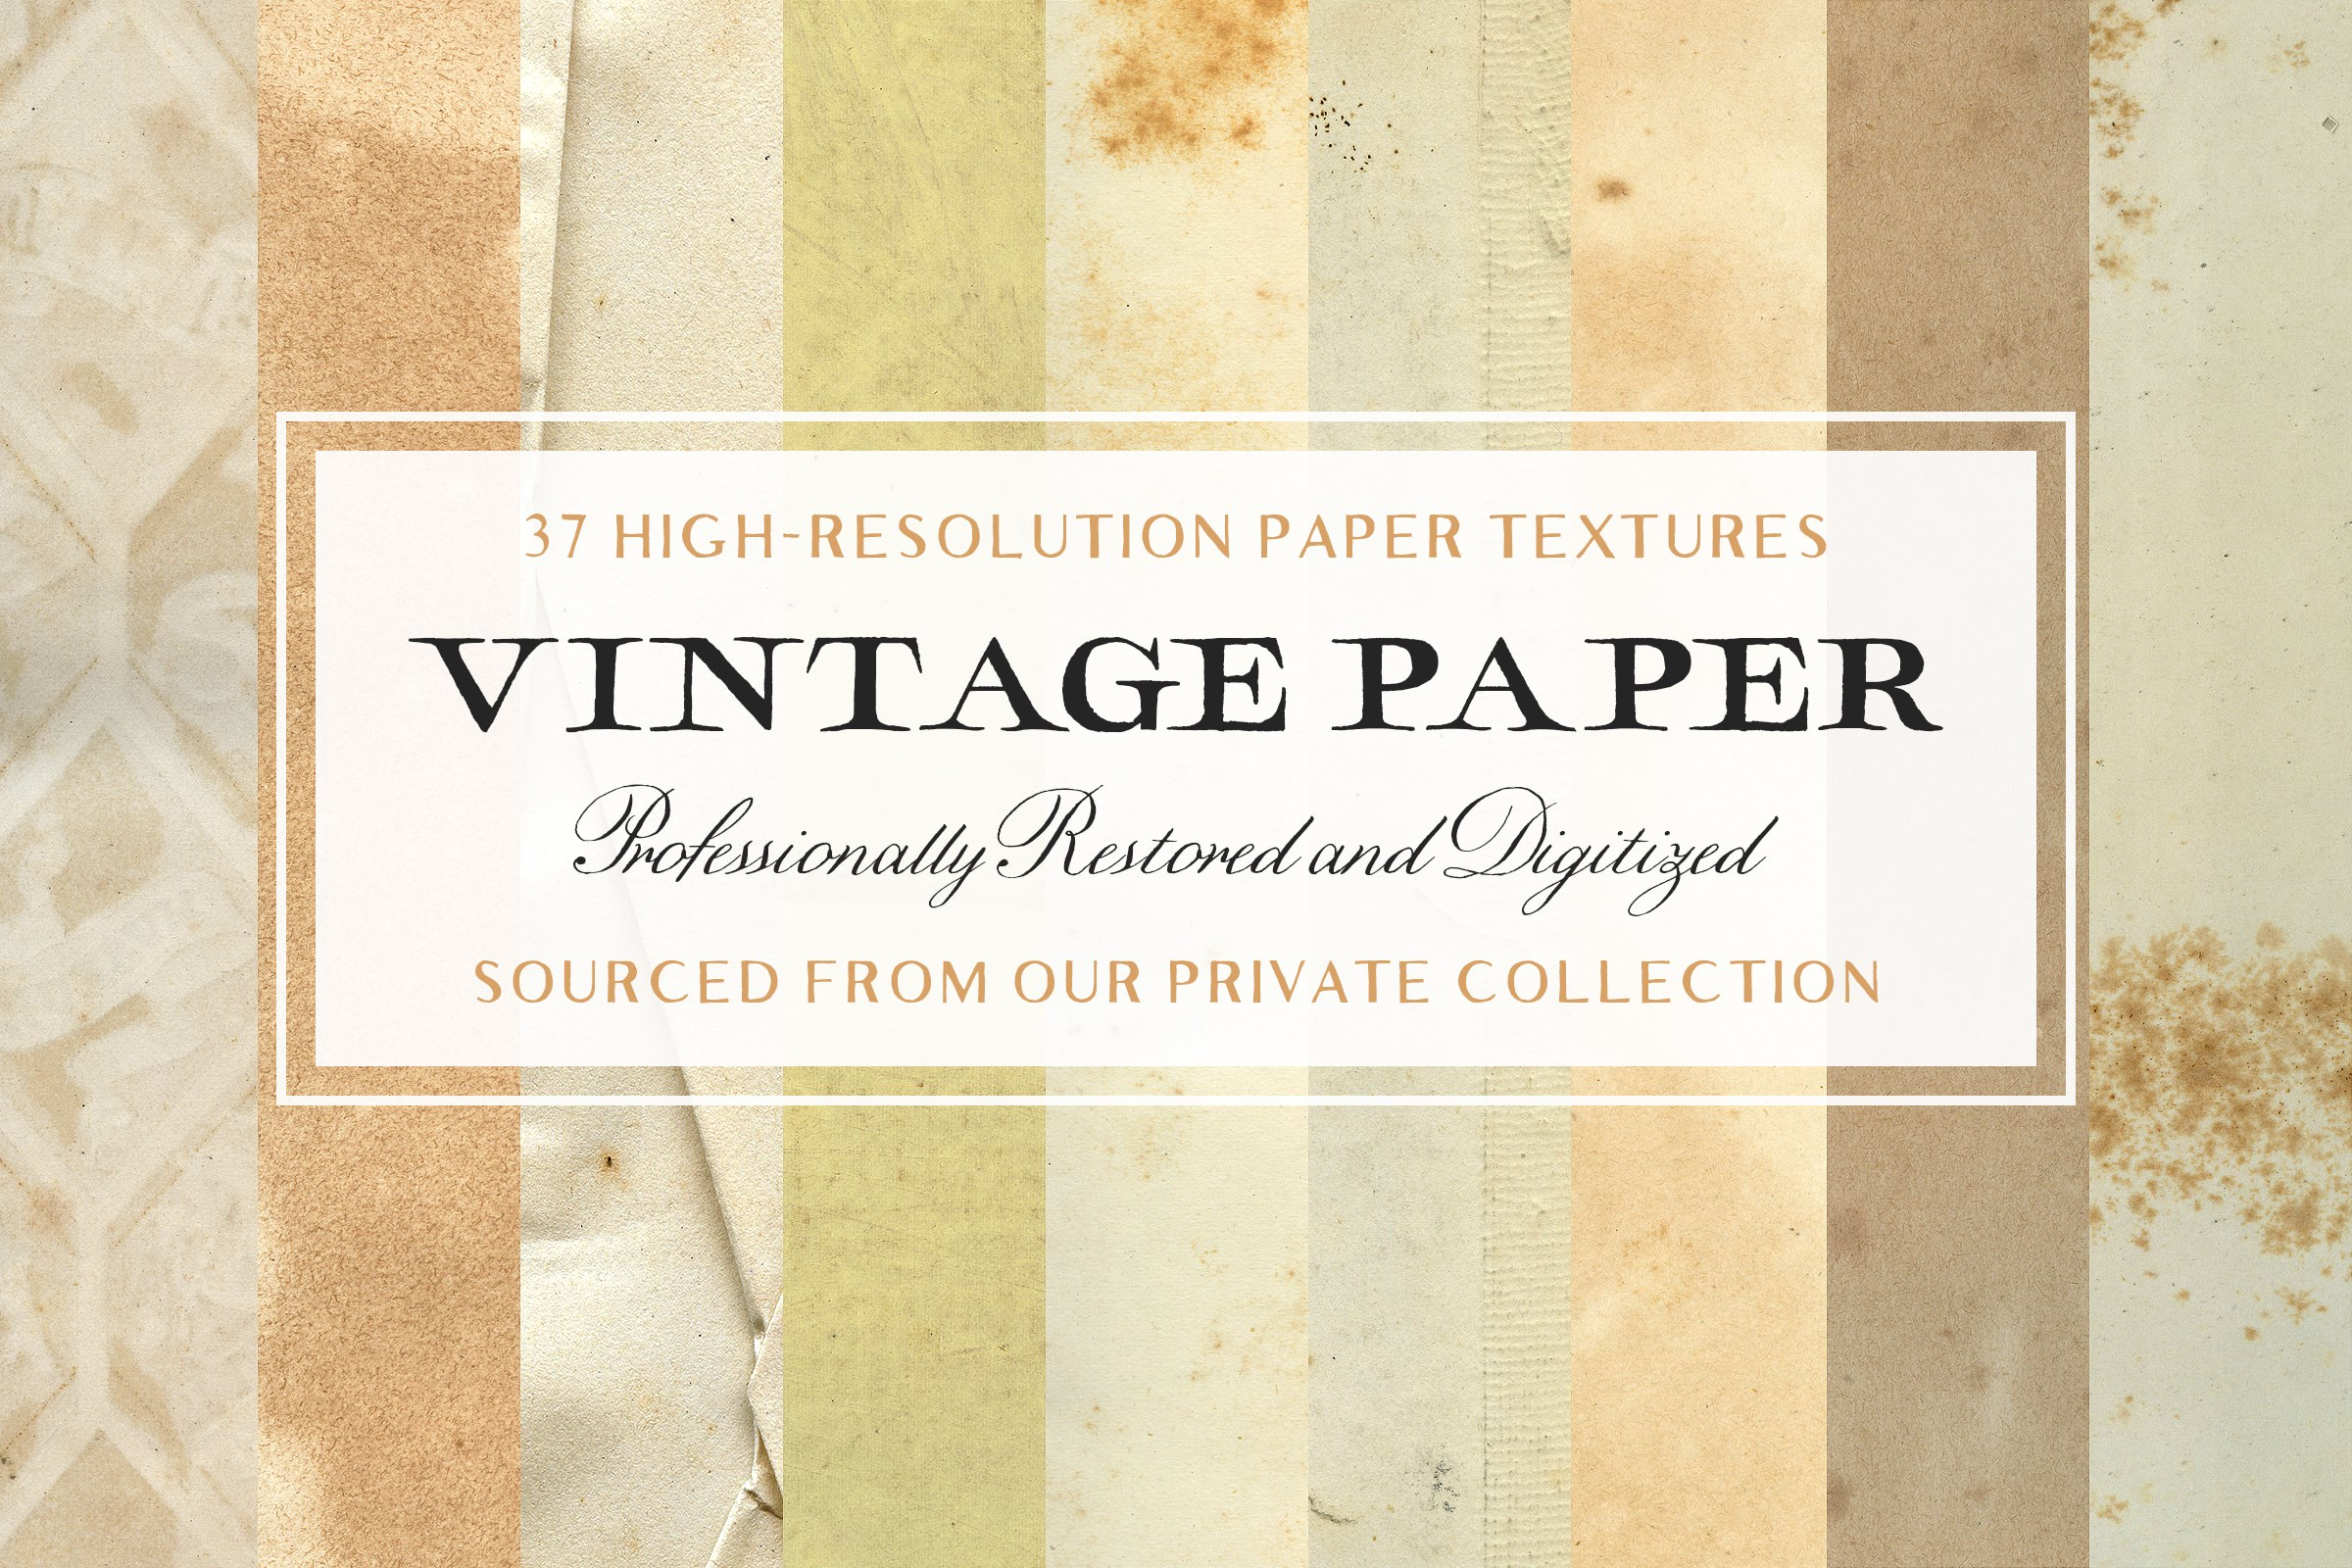 37 Vintage Paper Textures - Tom Chalky